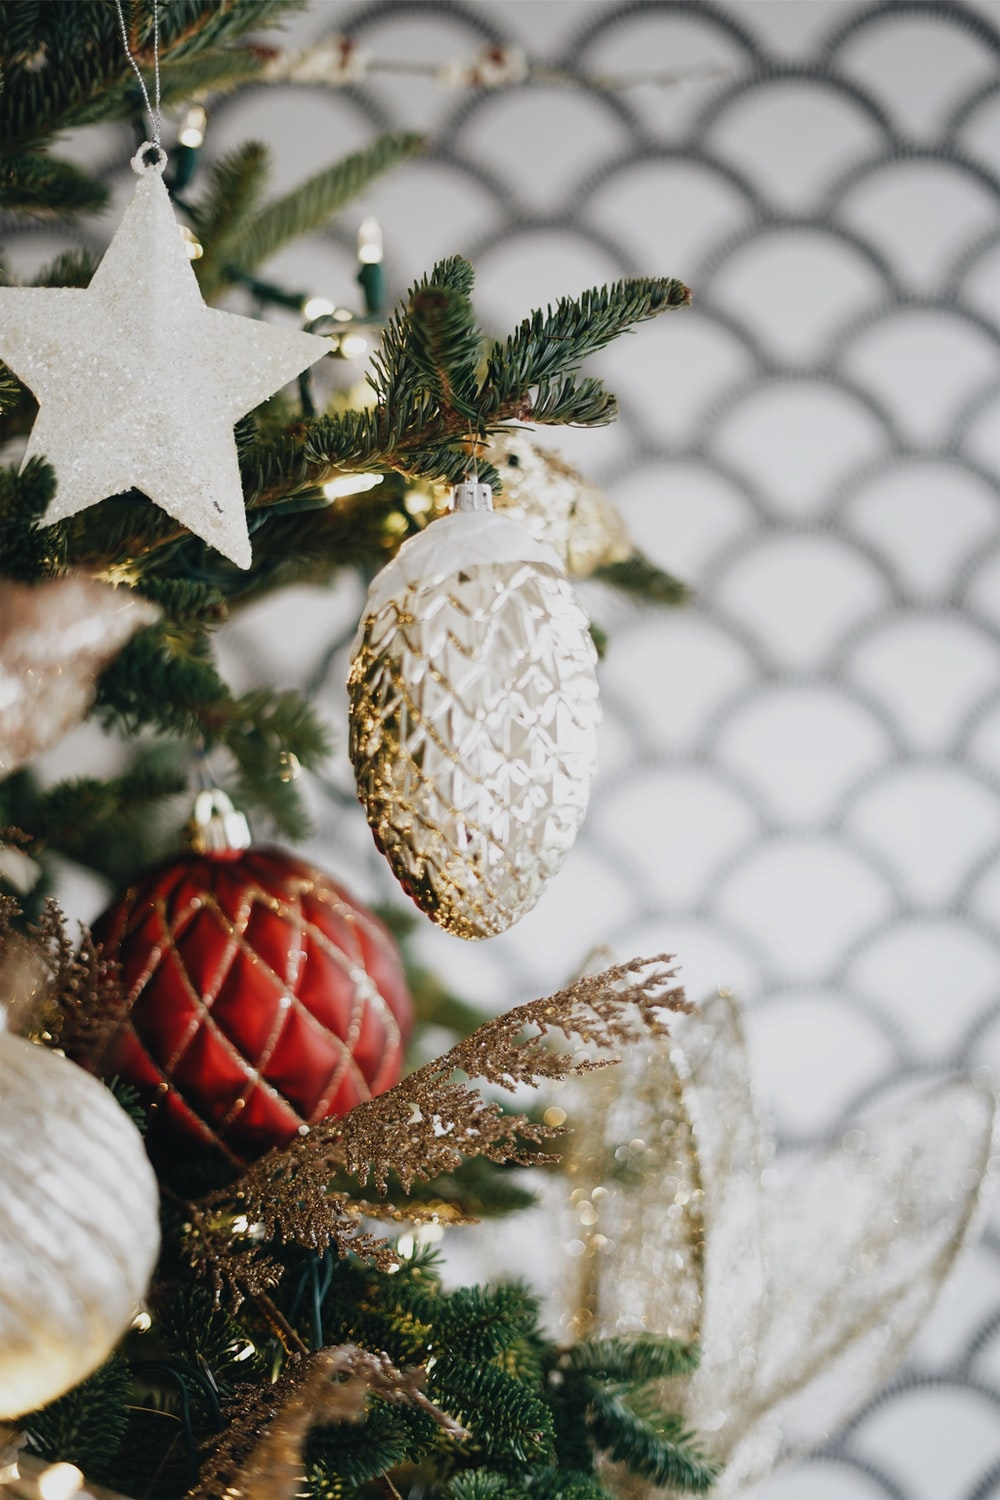 selective focus photography of ornaments on Christmas tree